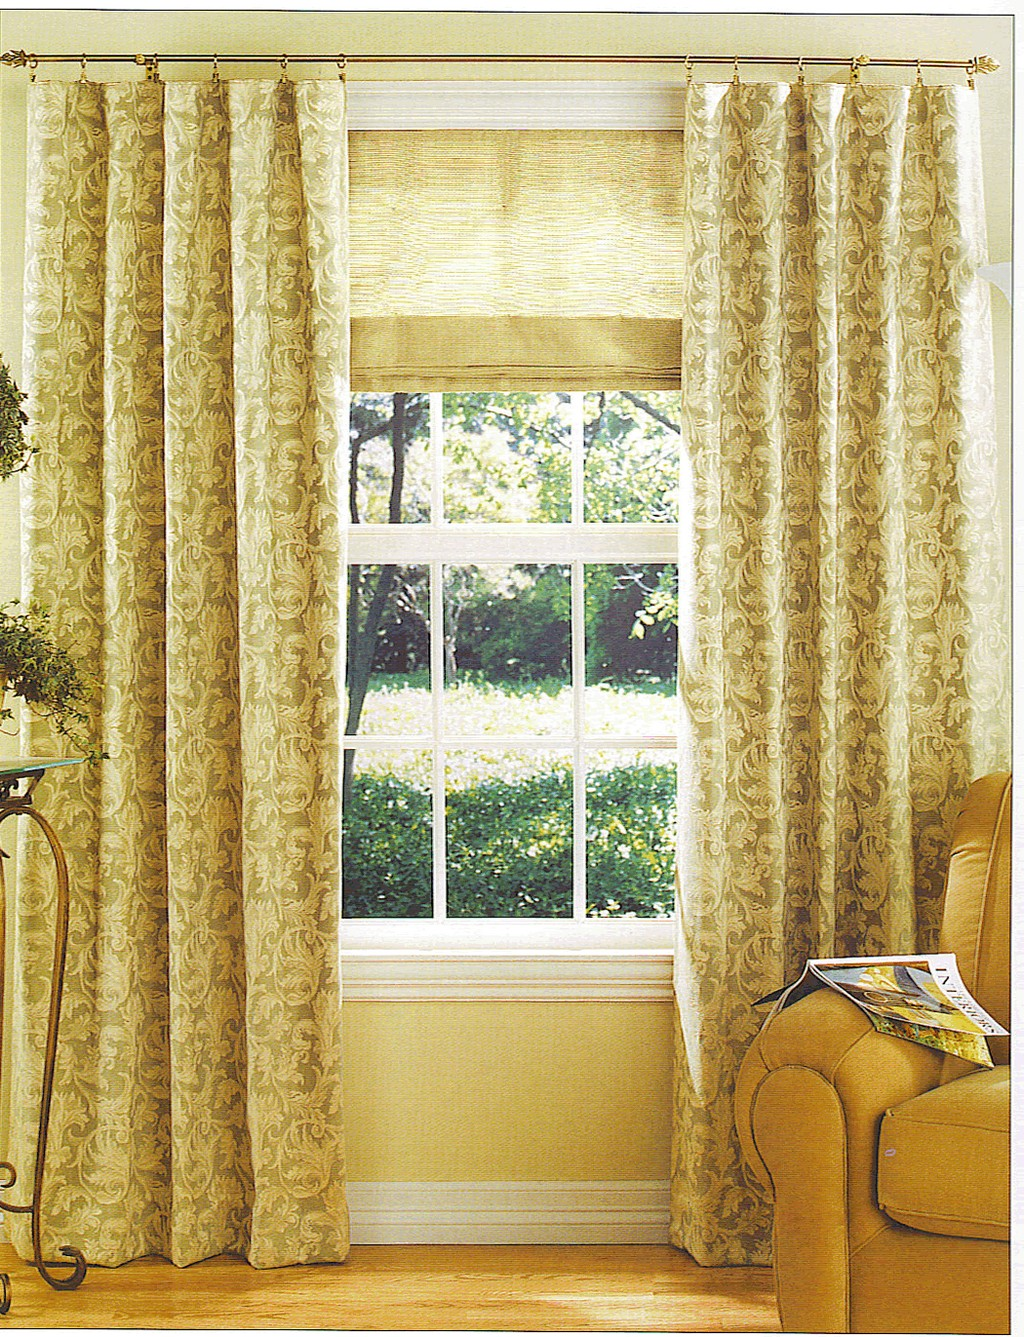 rooster curtains, how to make curtains, curtain rod brackets, linen window curtains